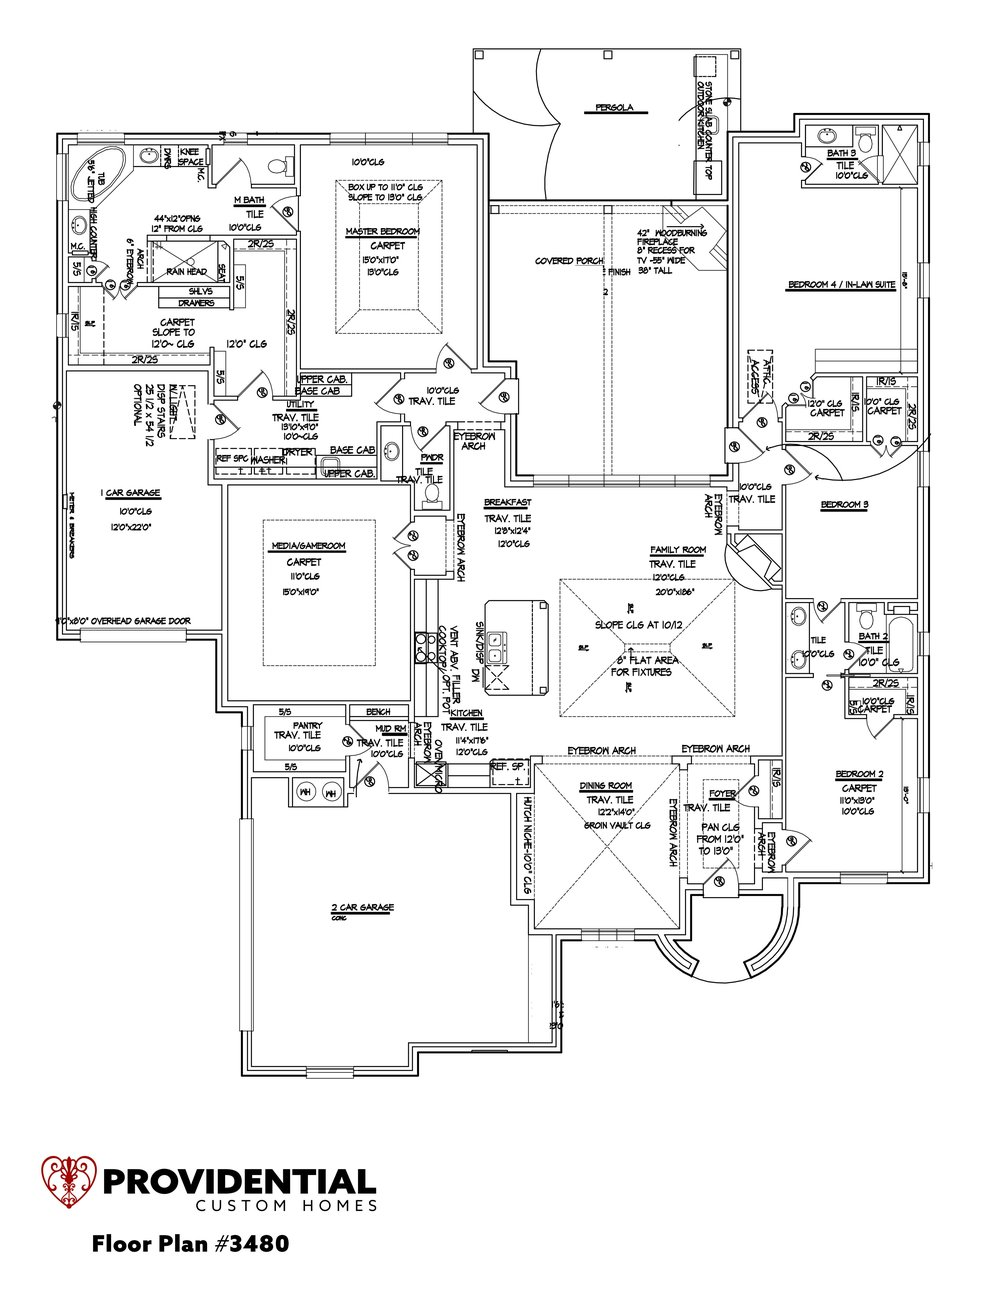 The FLOOR PLAN 3480.jpg